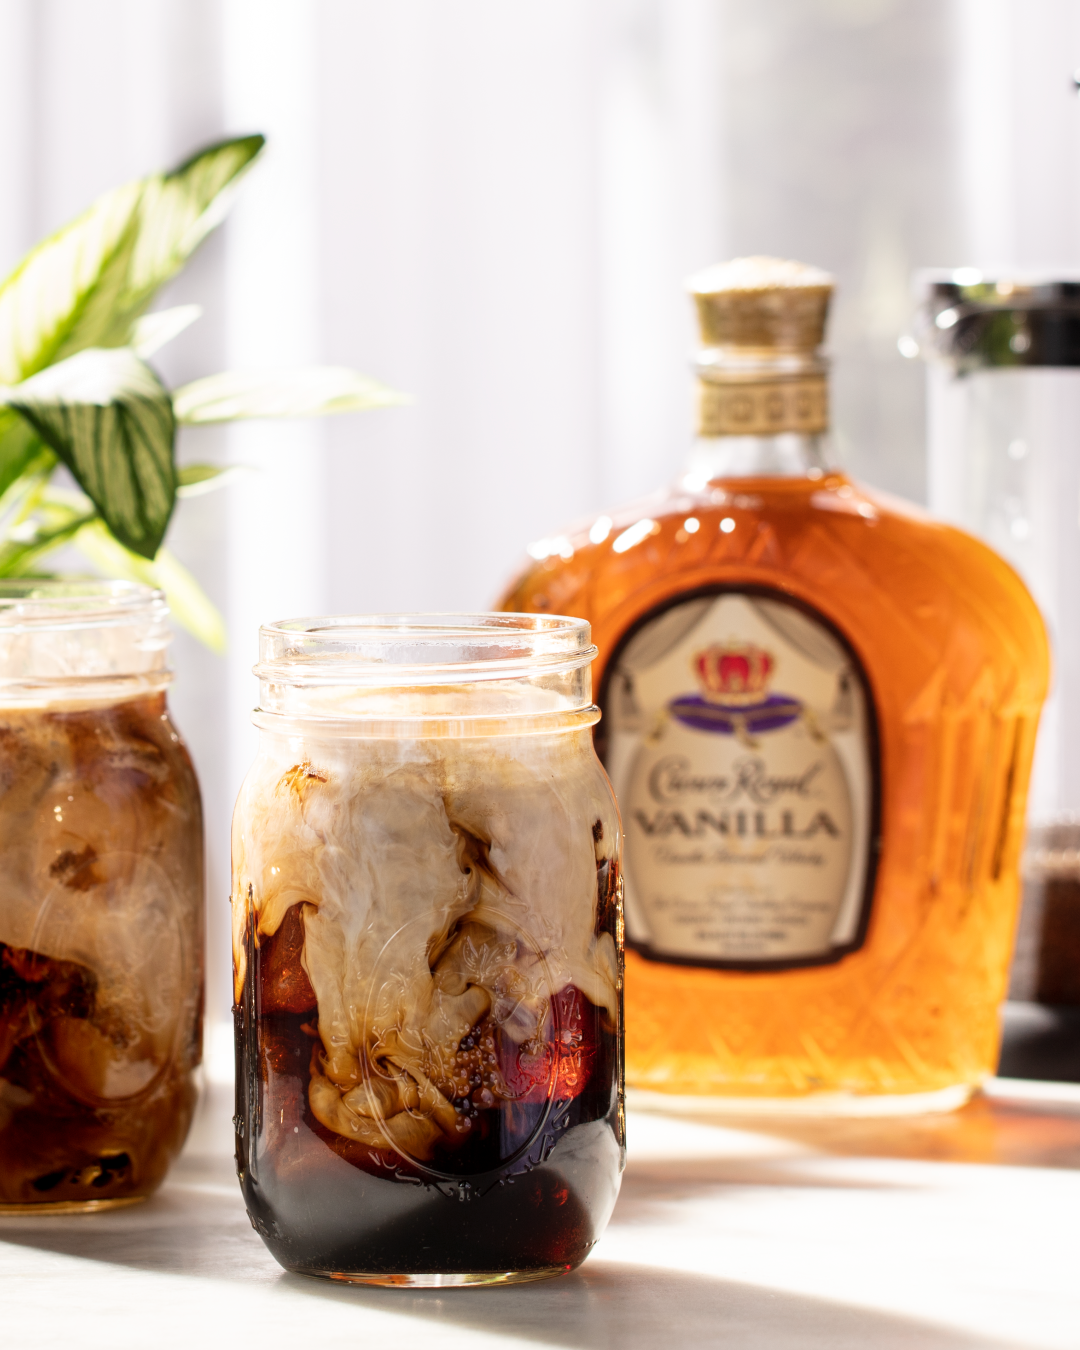 Crown Royal Royal Vanilla Iced Coffee Whisky Cocktail